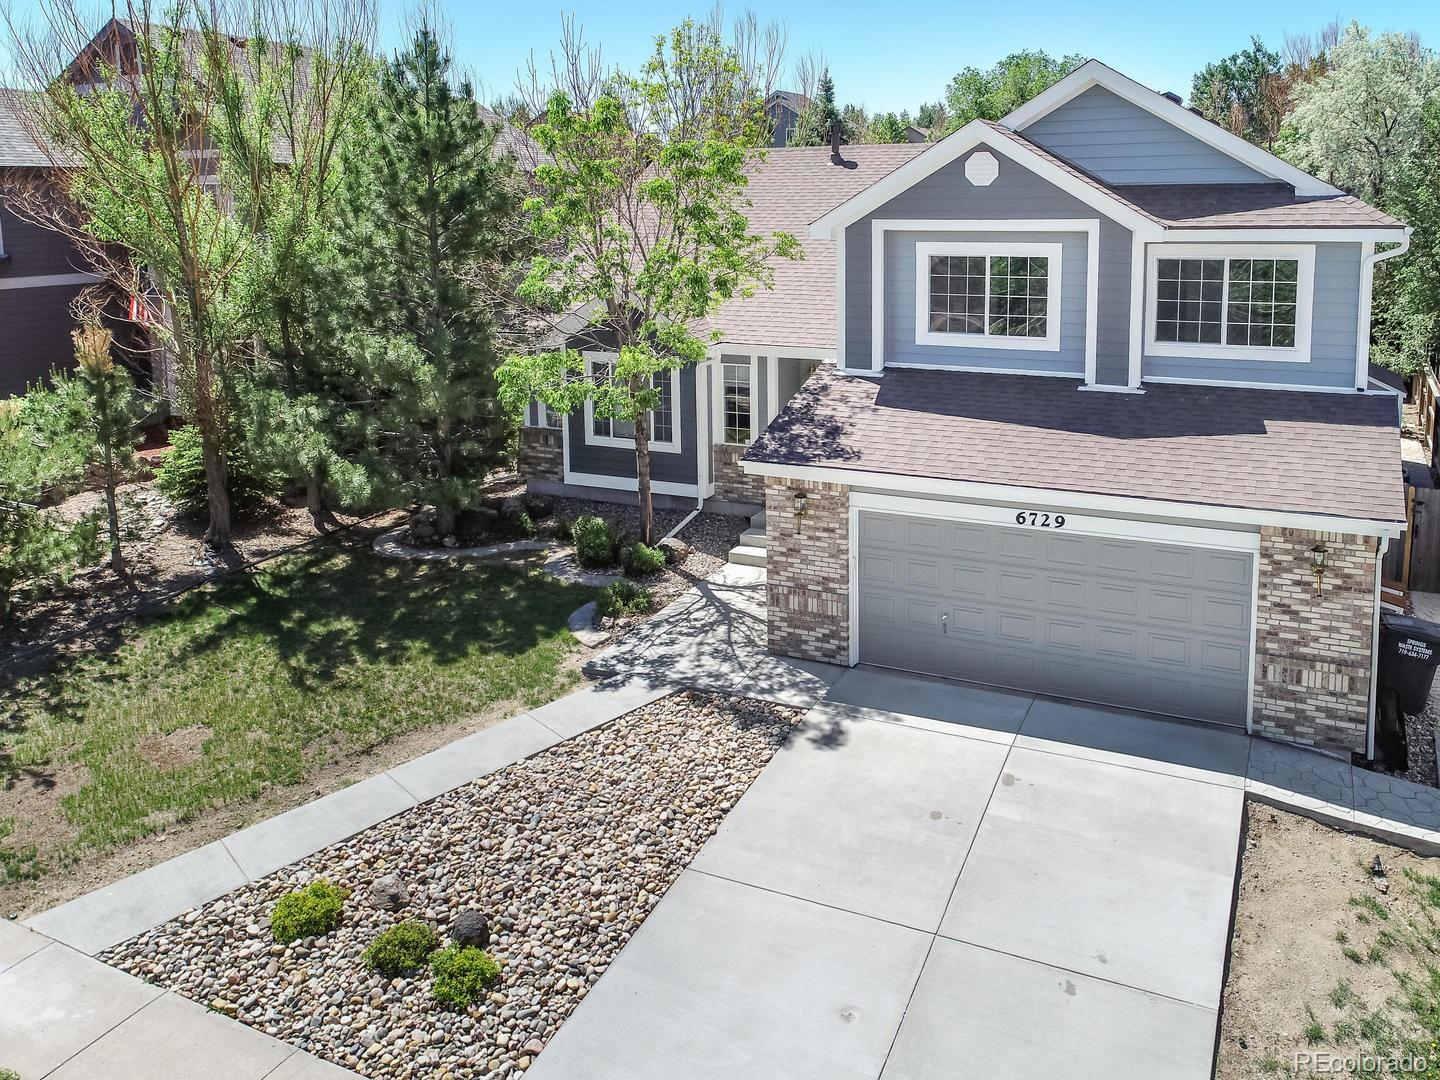 MLS# 1530283 - 2 - 6729 Stockwell Drive, Colorado Springs, CO 80922